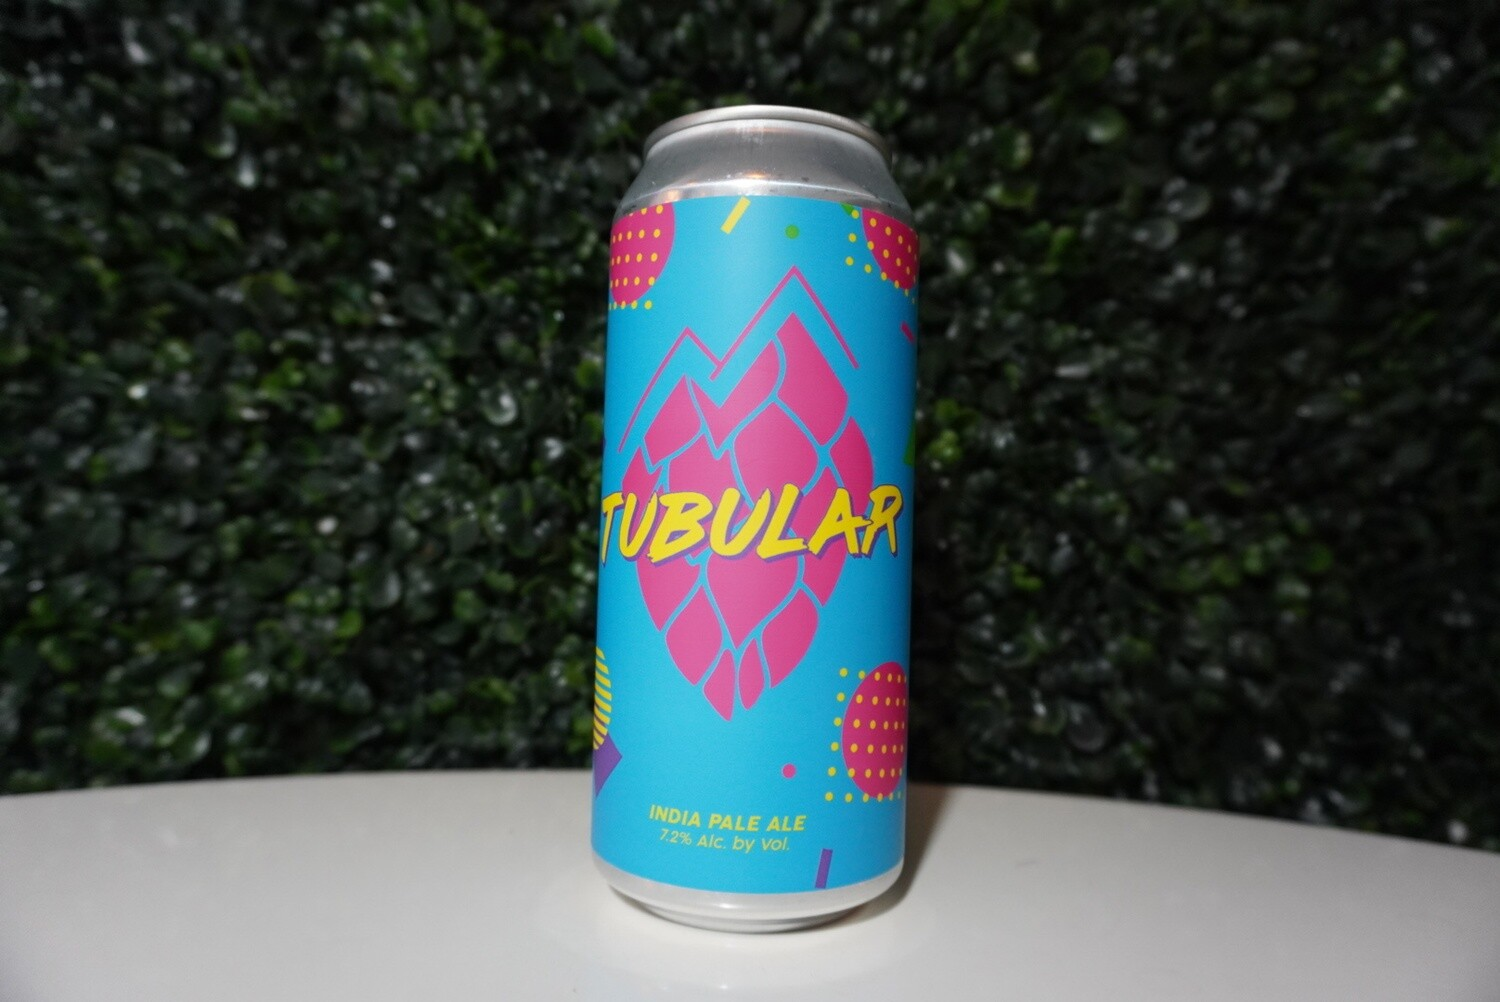 Orono - Tubular - NEIPA - 7.2% ABV - 16oz Can